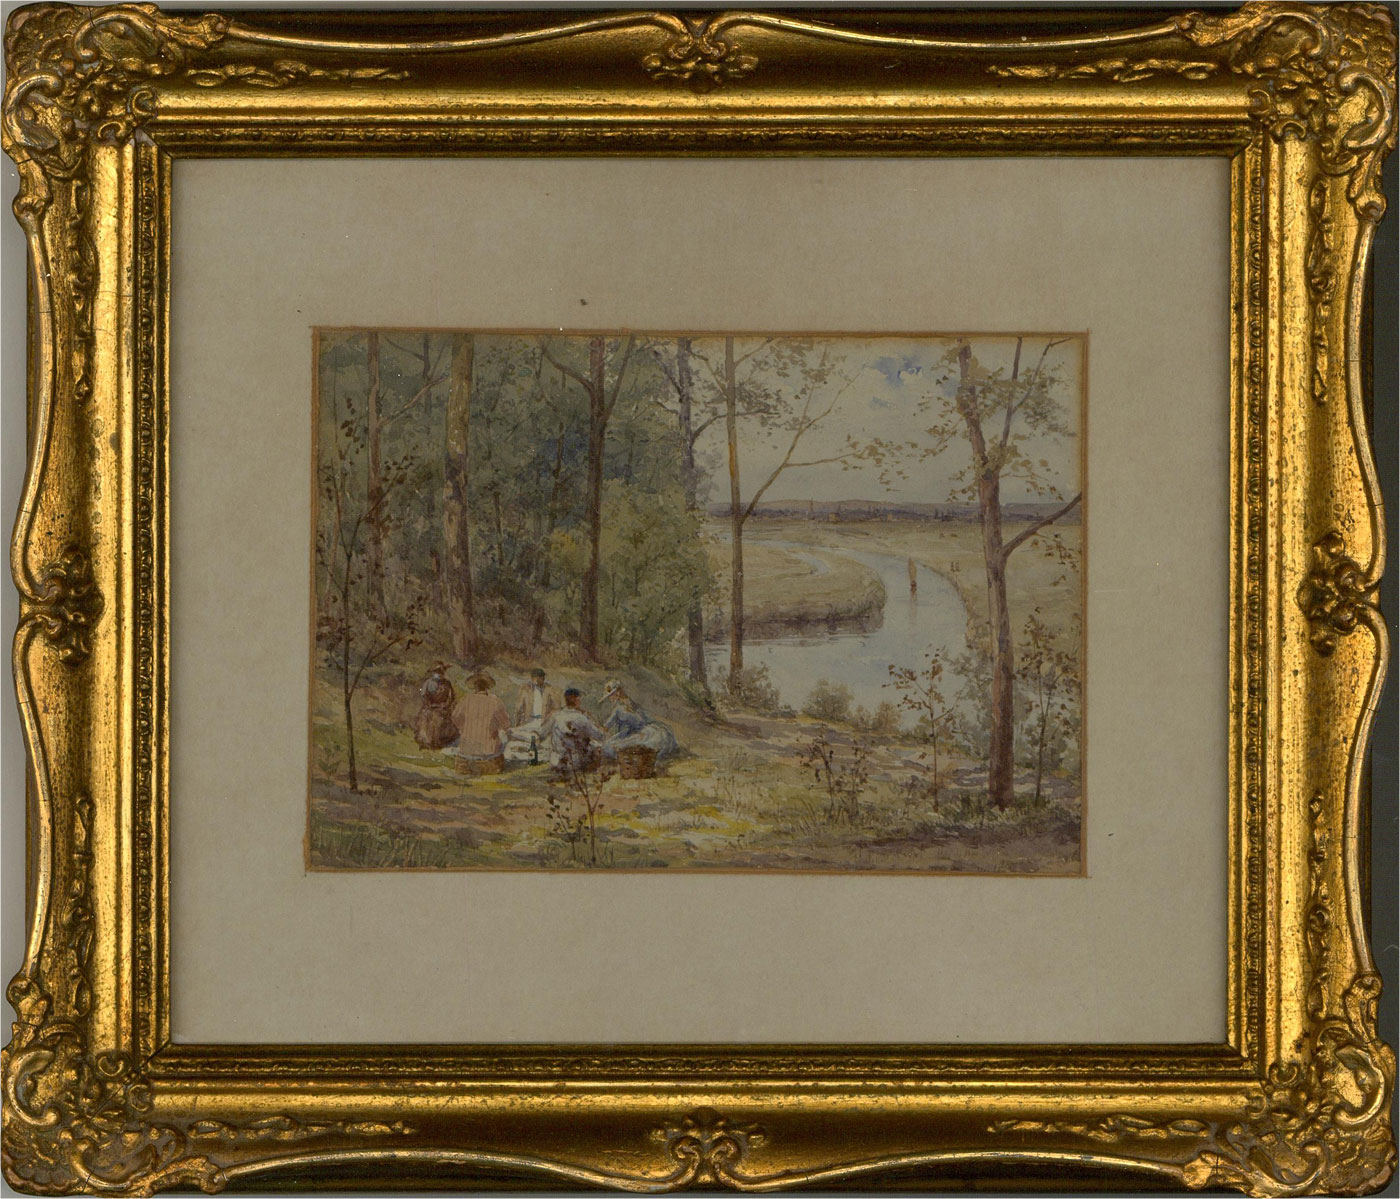 Early 20th Century Watercolour - The Picnic